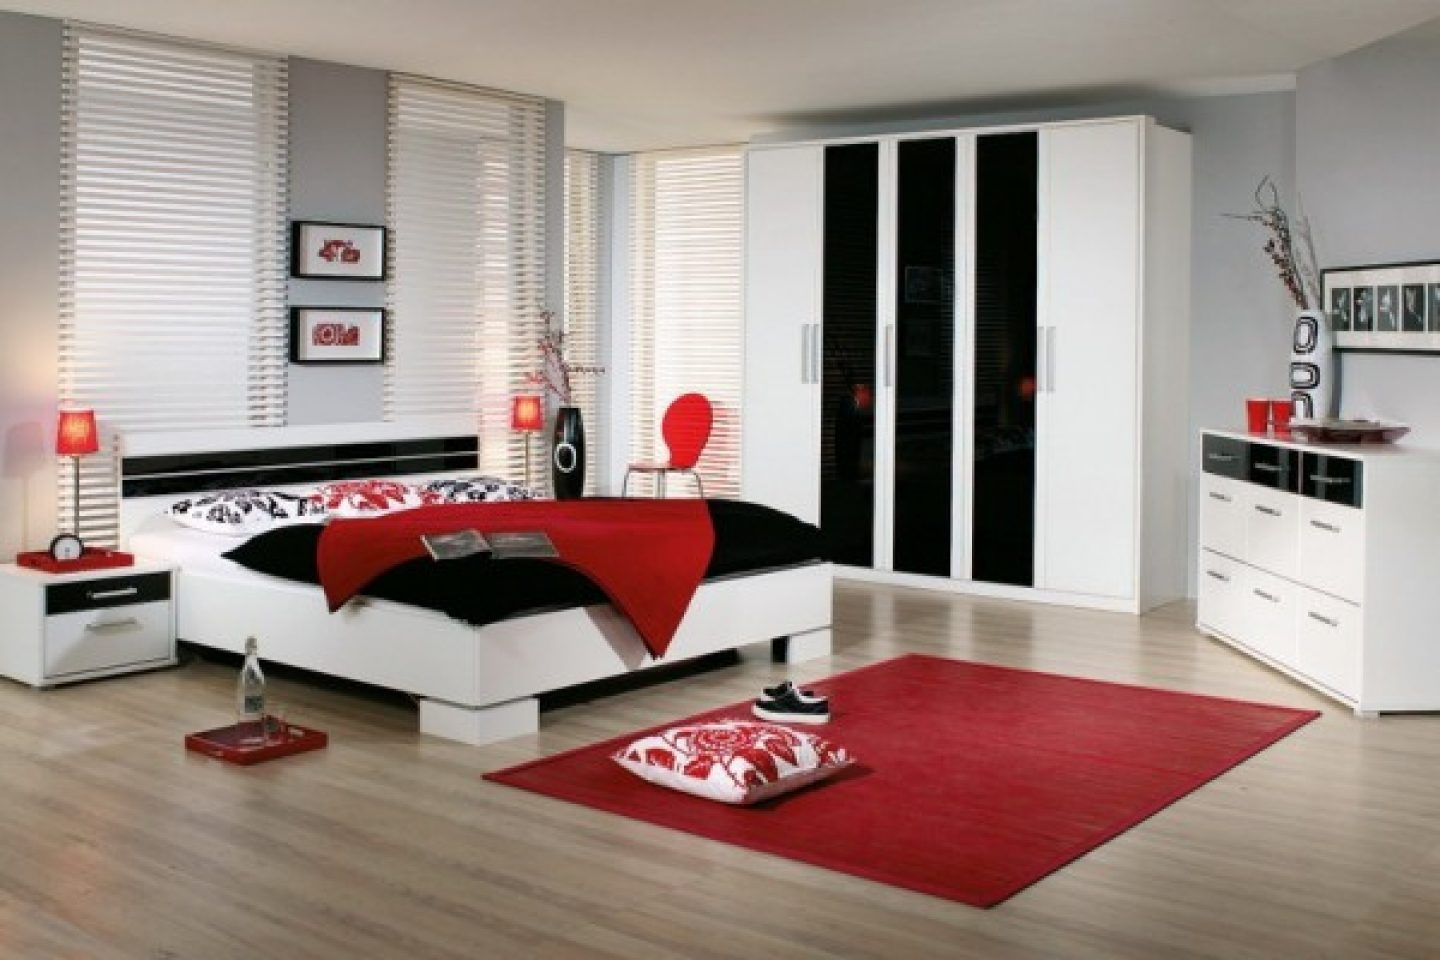 Quartos de casal modernos - Black white and red bedroom decorating ideas ...